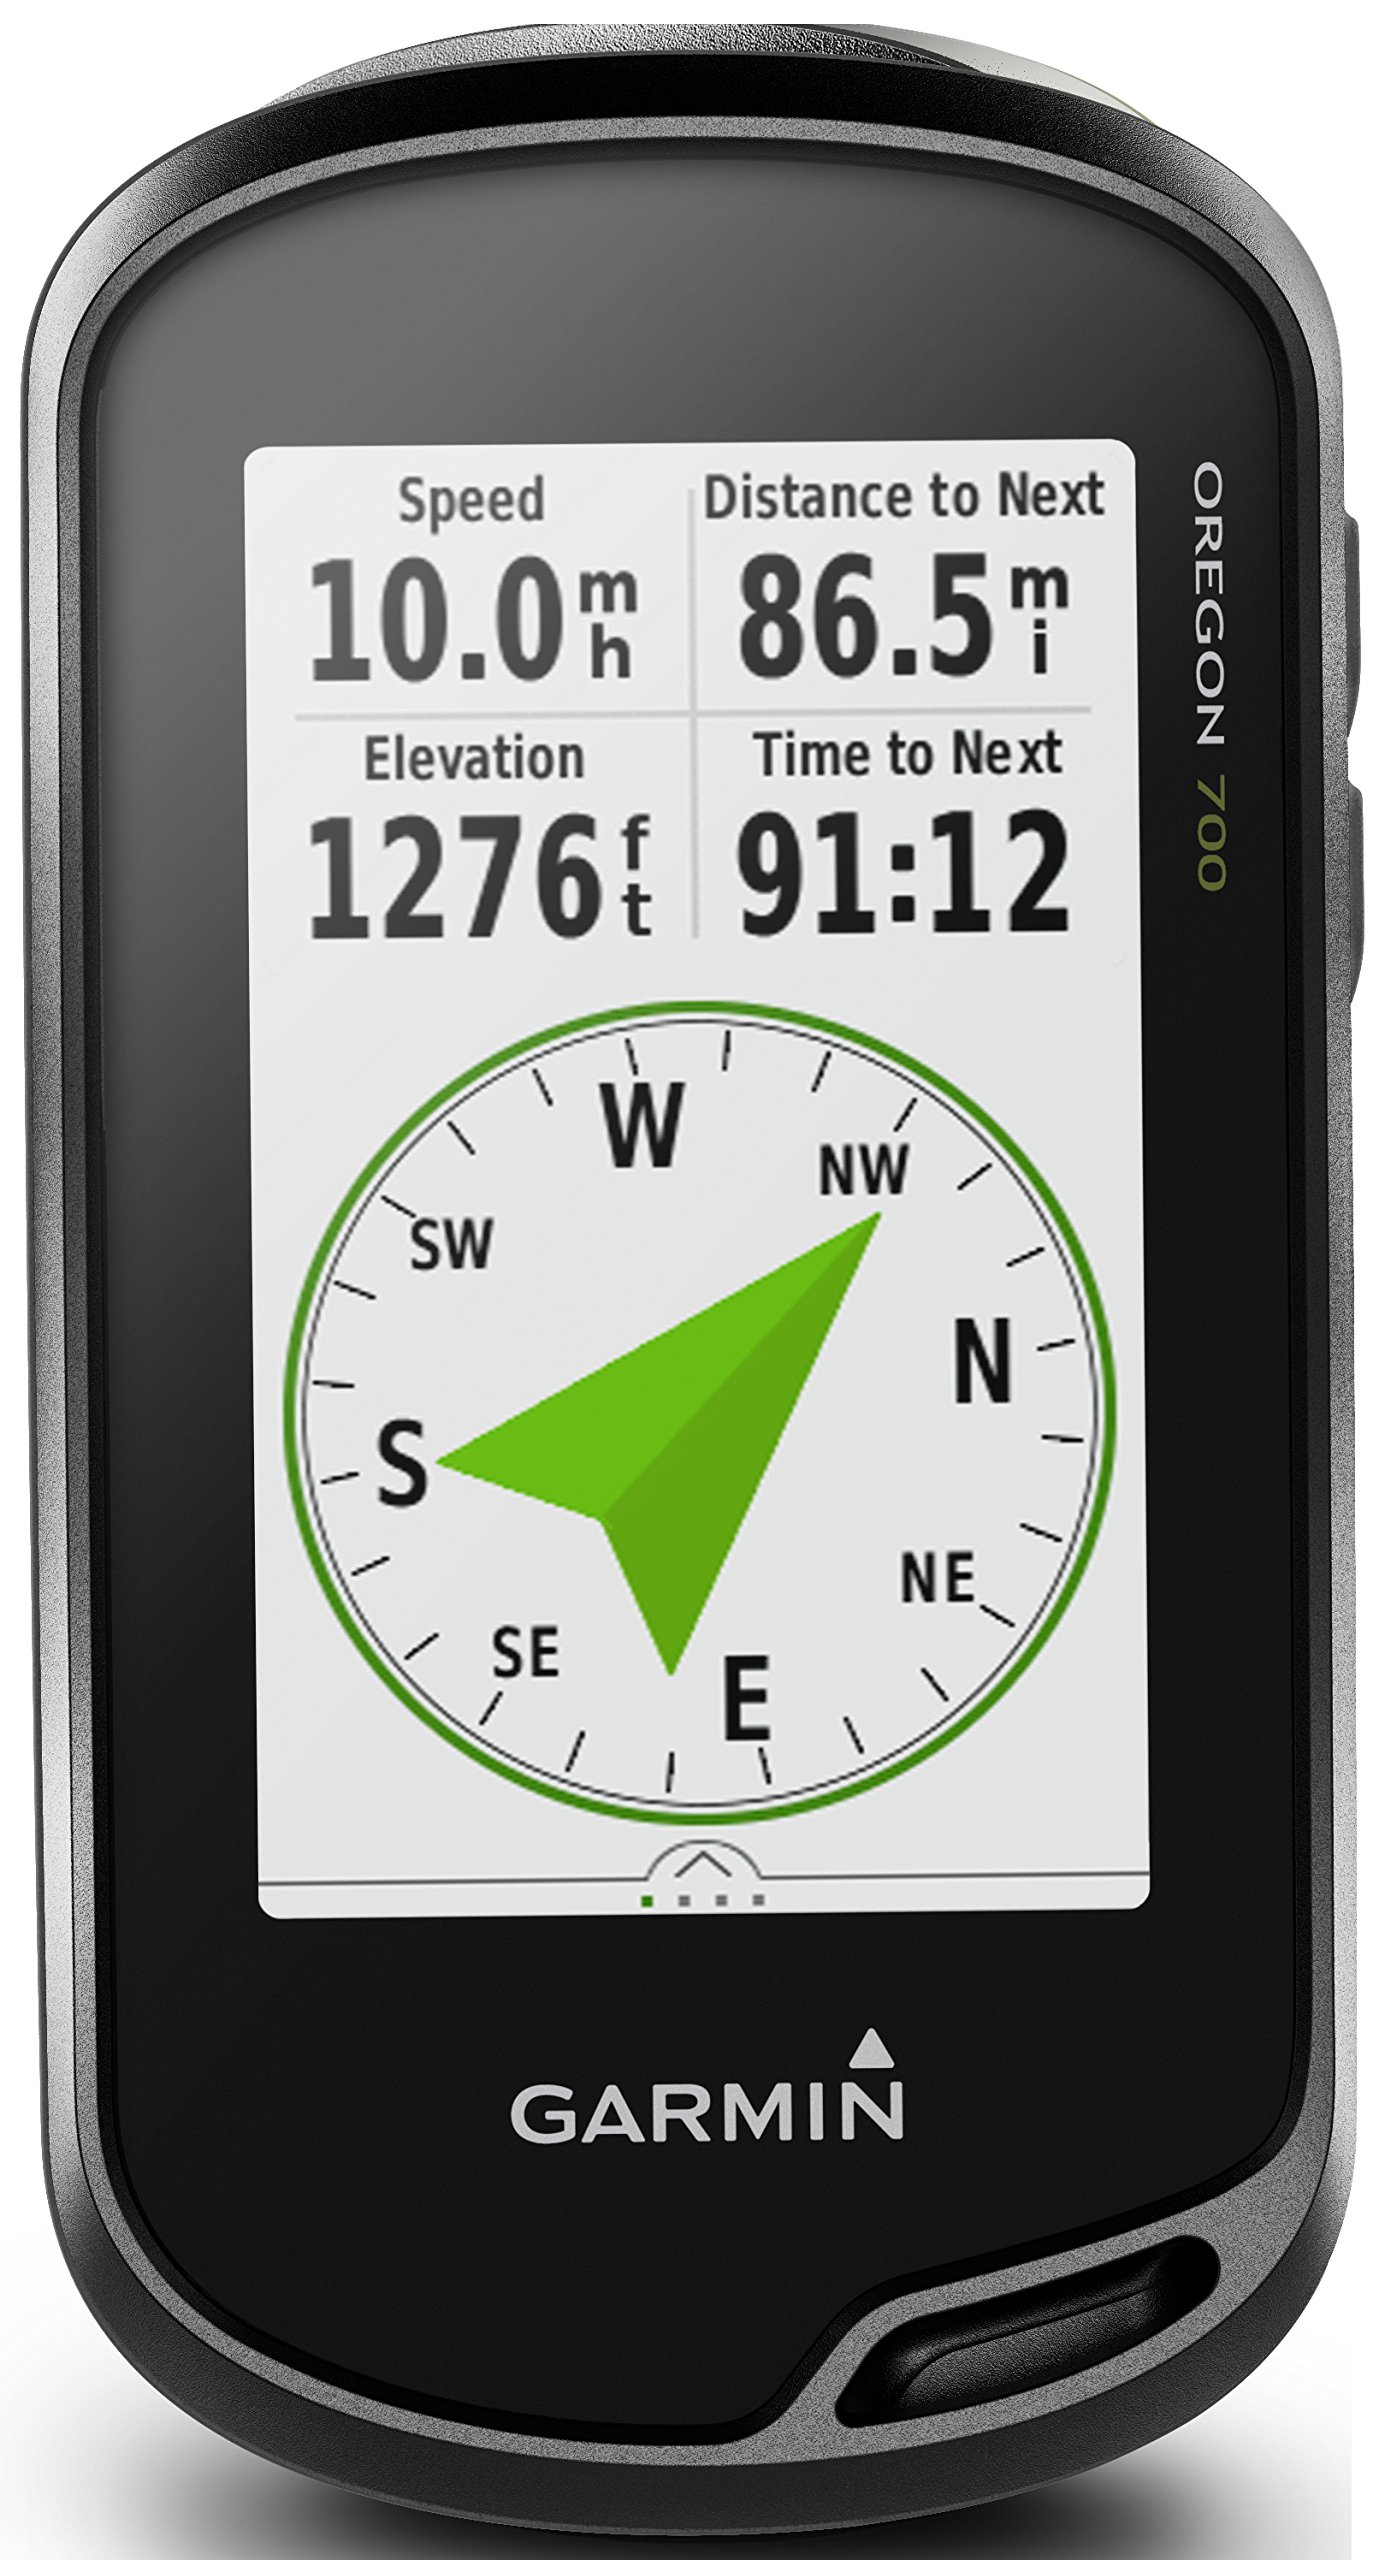 Garmin Oregon 700 Handheld GPS Navigation System 4